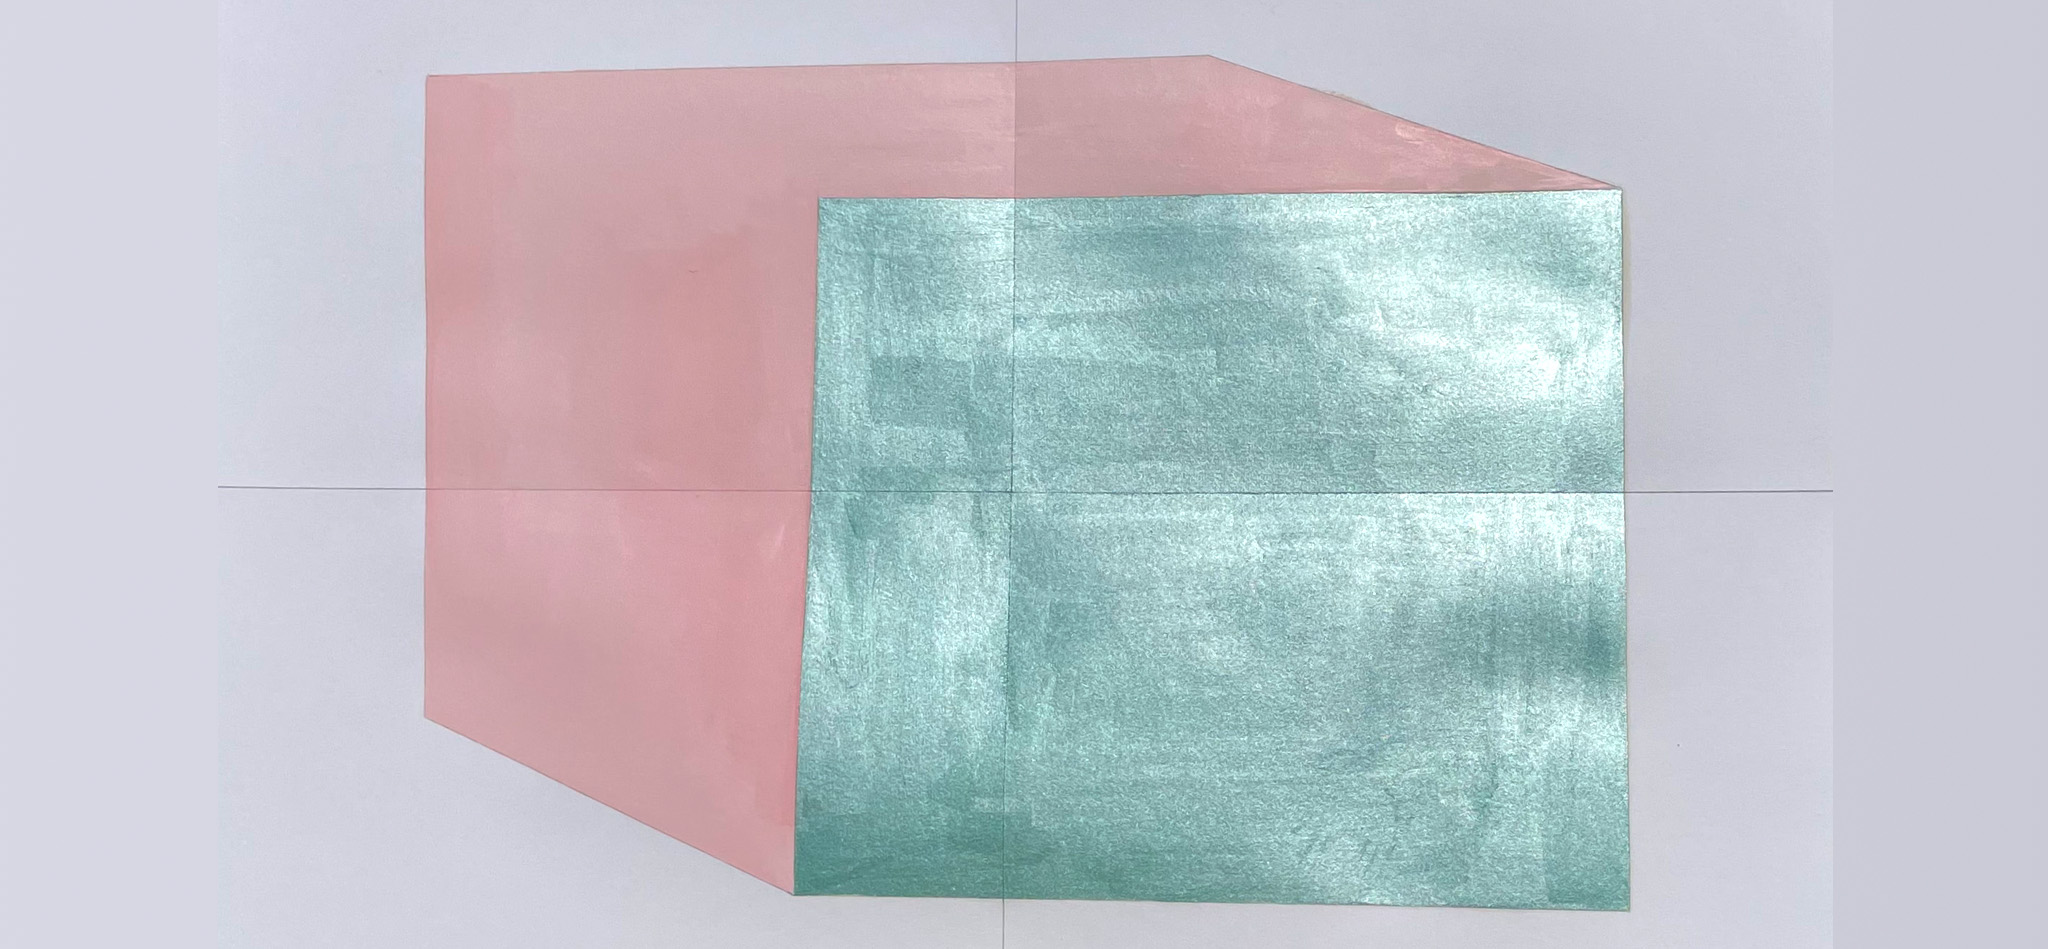 cubonito, 110 cm x 75 cm, oil and pigments on paper, 2021